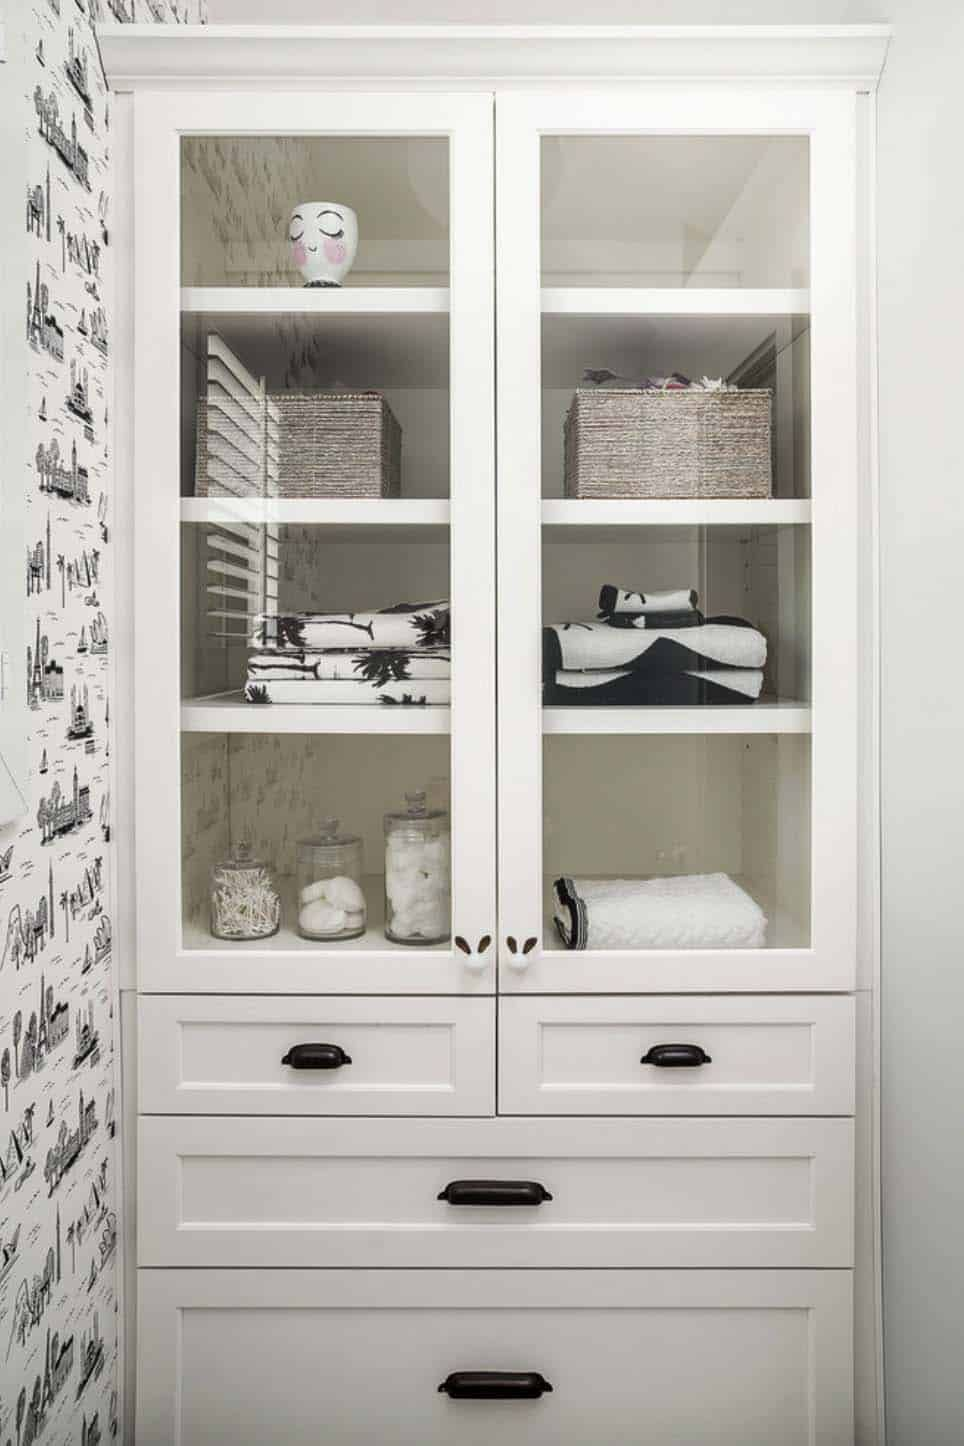 Store More In Your Bathroom With These Smart Storage Ideas Built